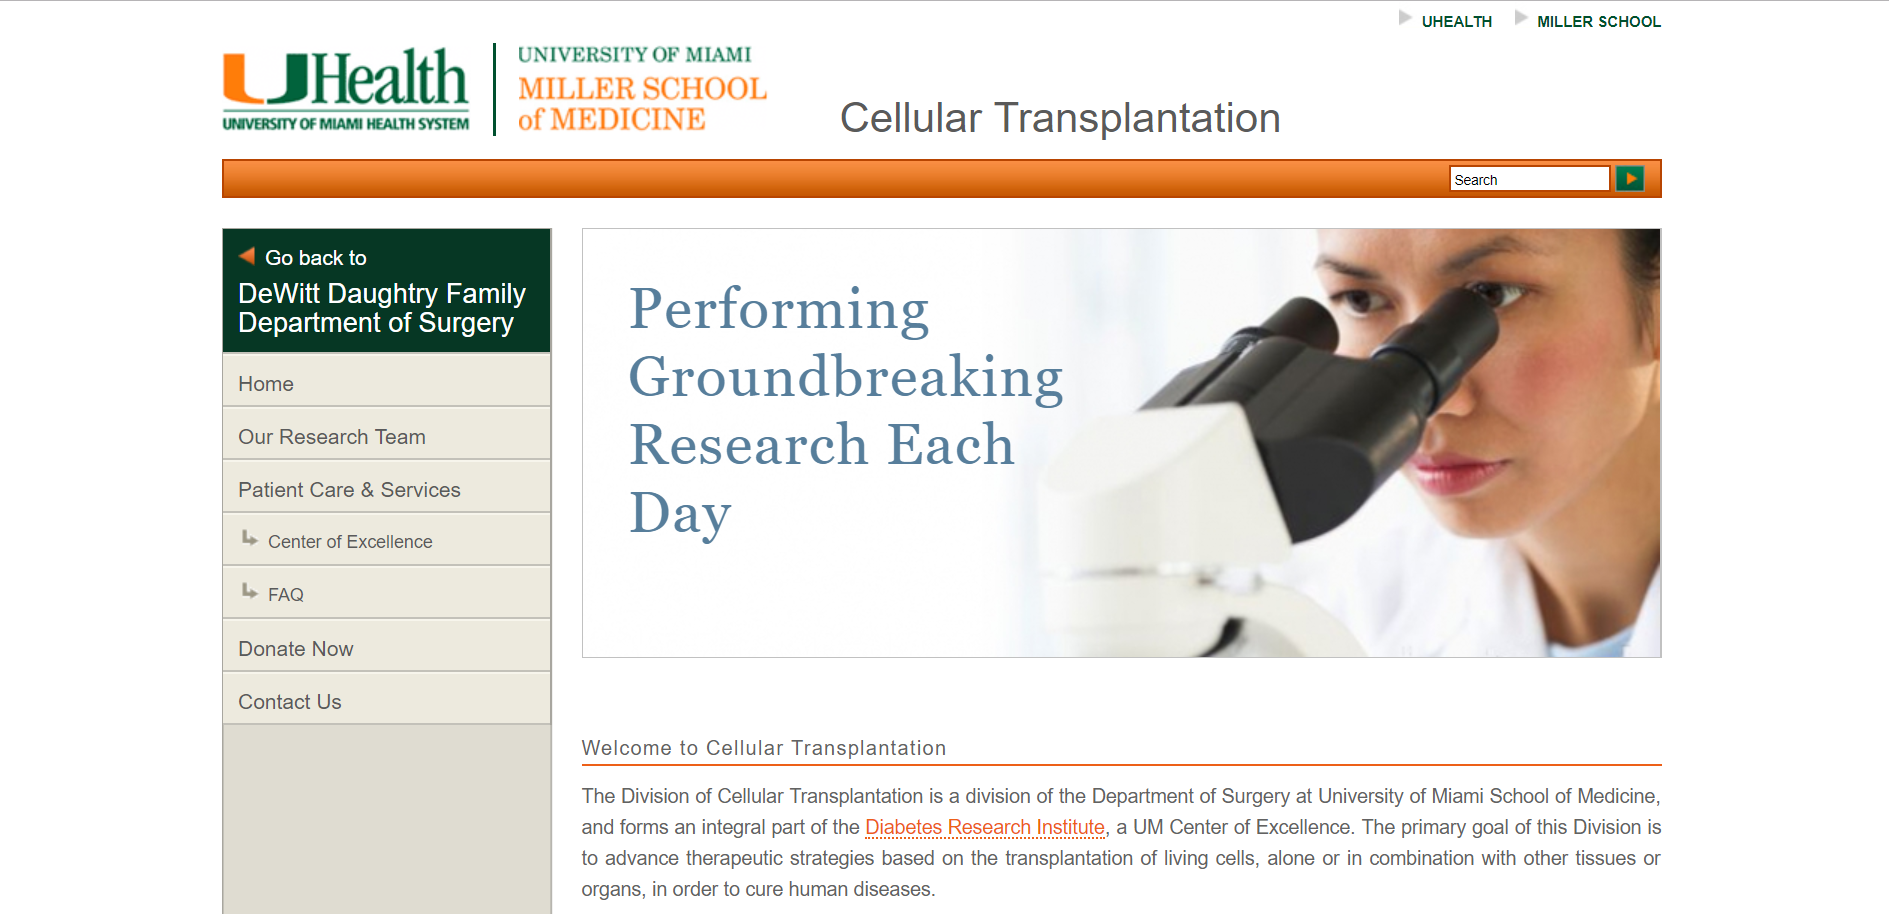 University of Miami Miller School of Medicine, Welcome to Cellular Transplantation